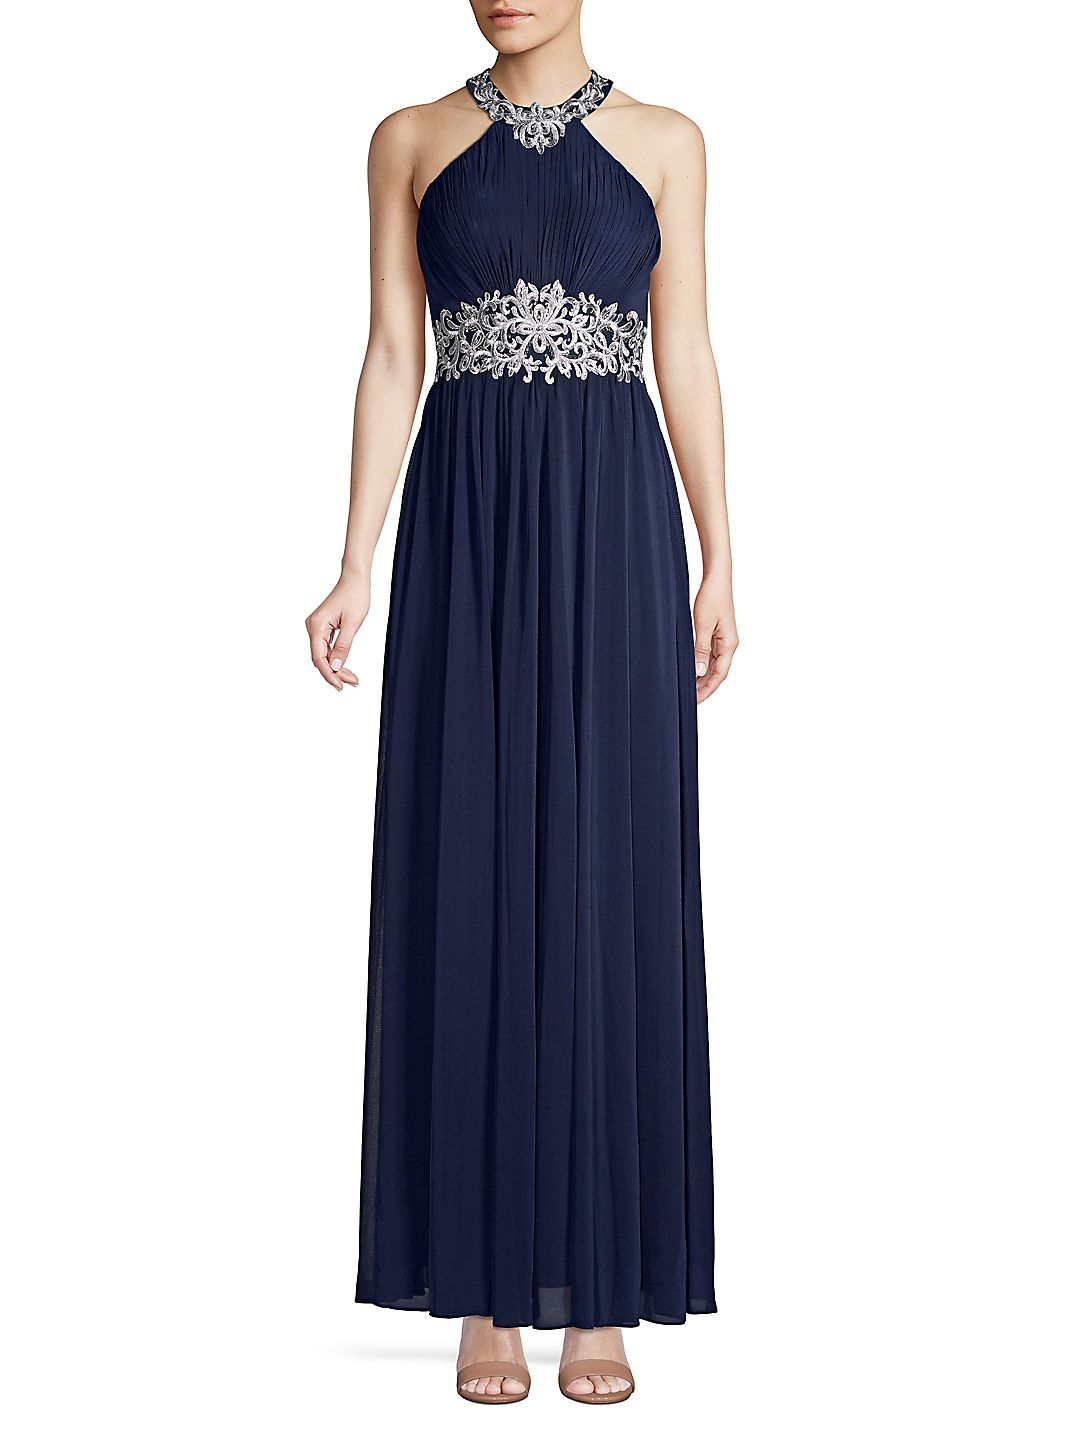 Embroidered Halterneck Column Gown